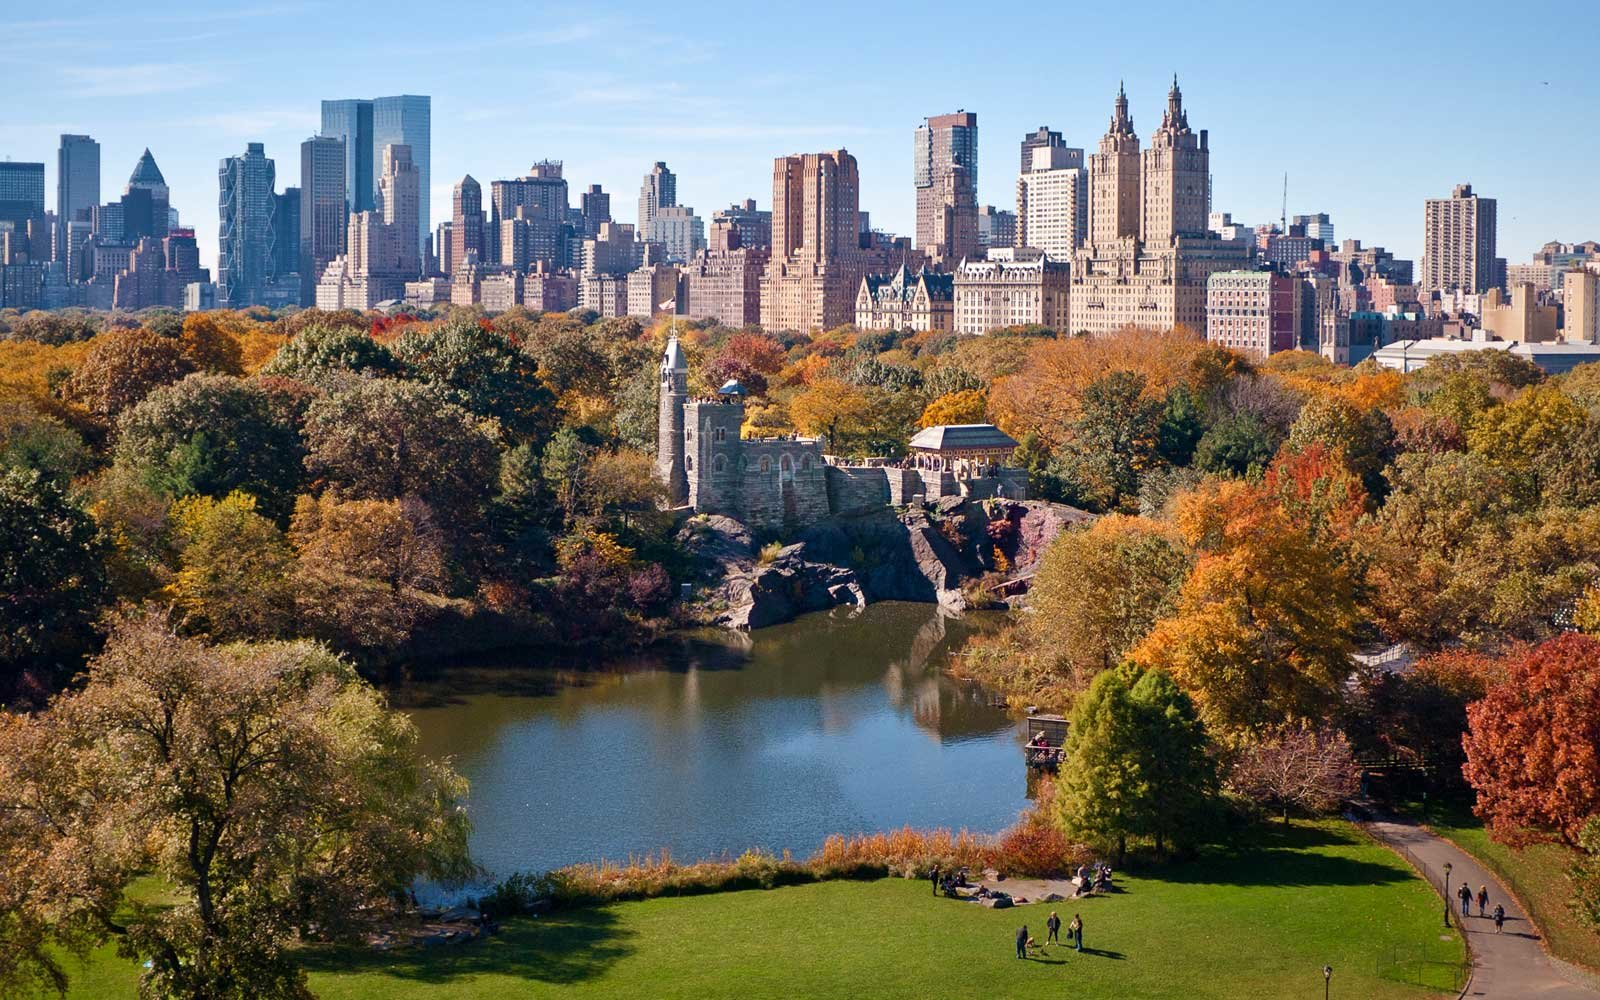 Central Park' Belvedere Castle Closing Of 2018